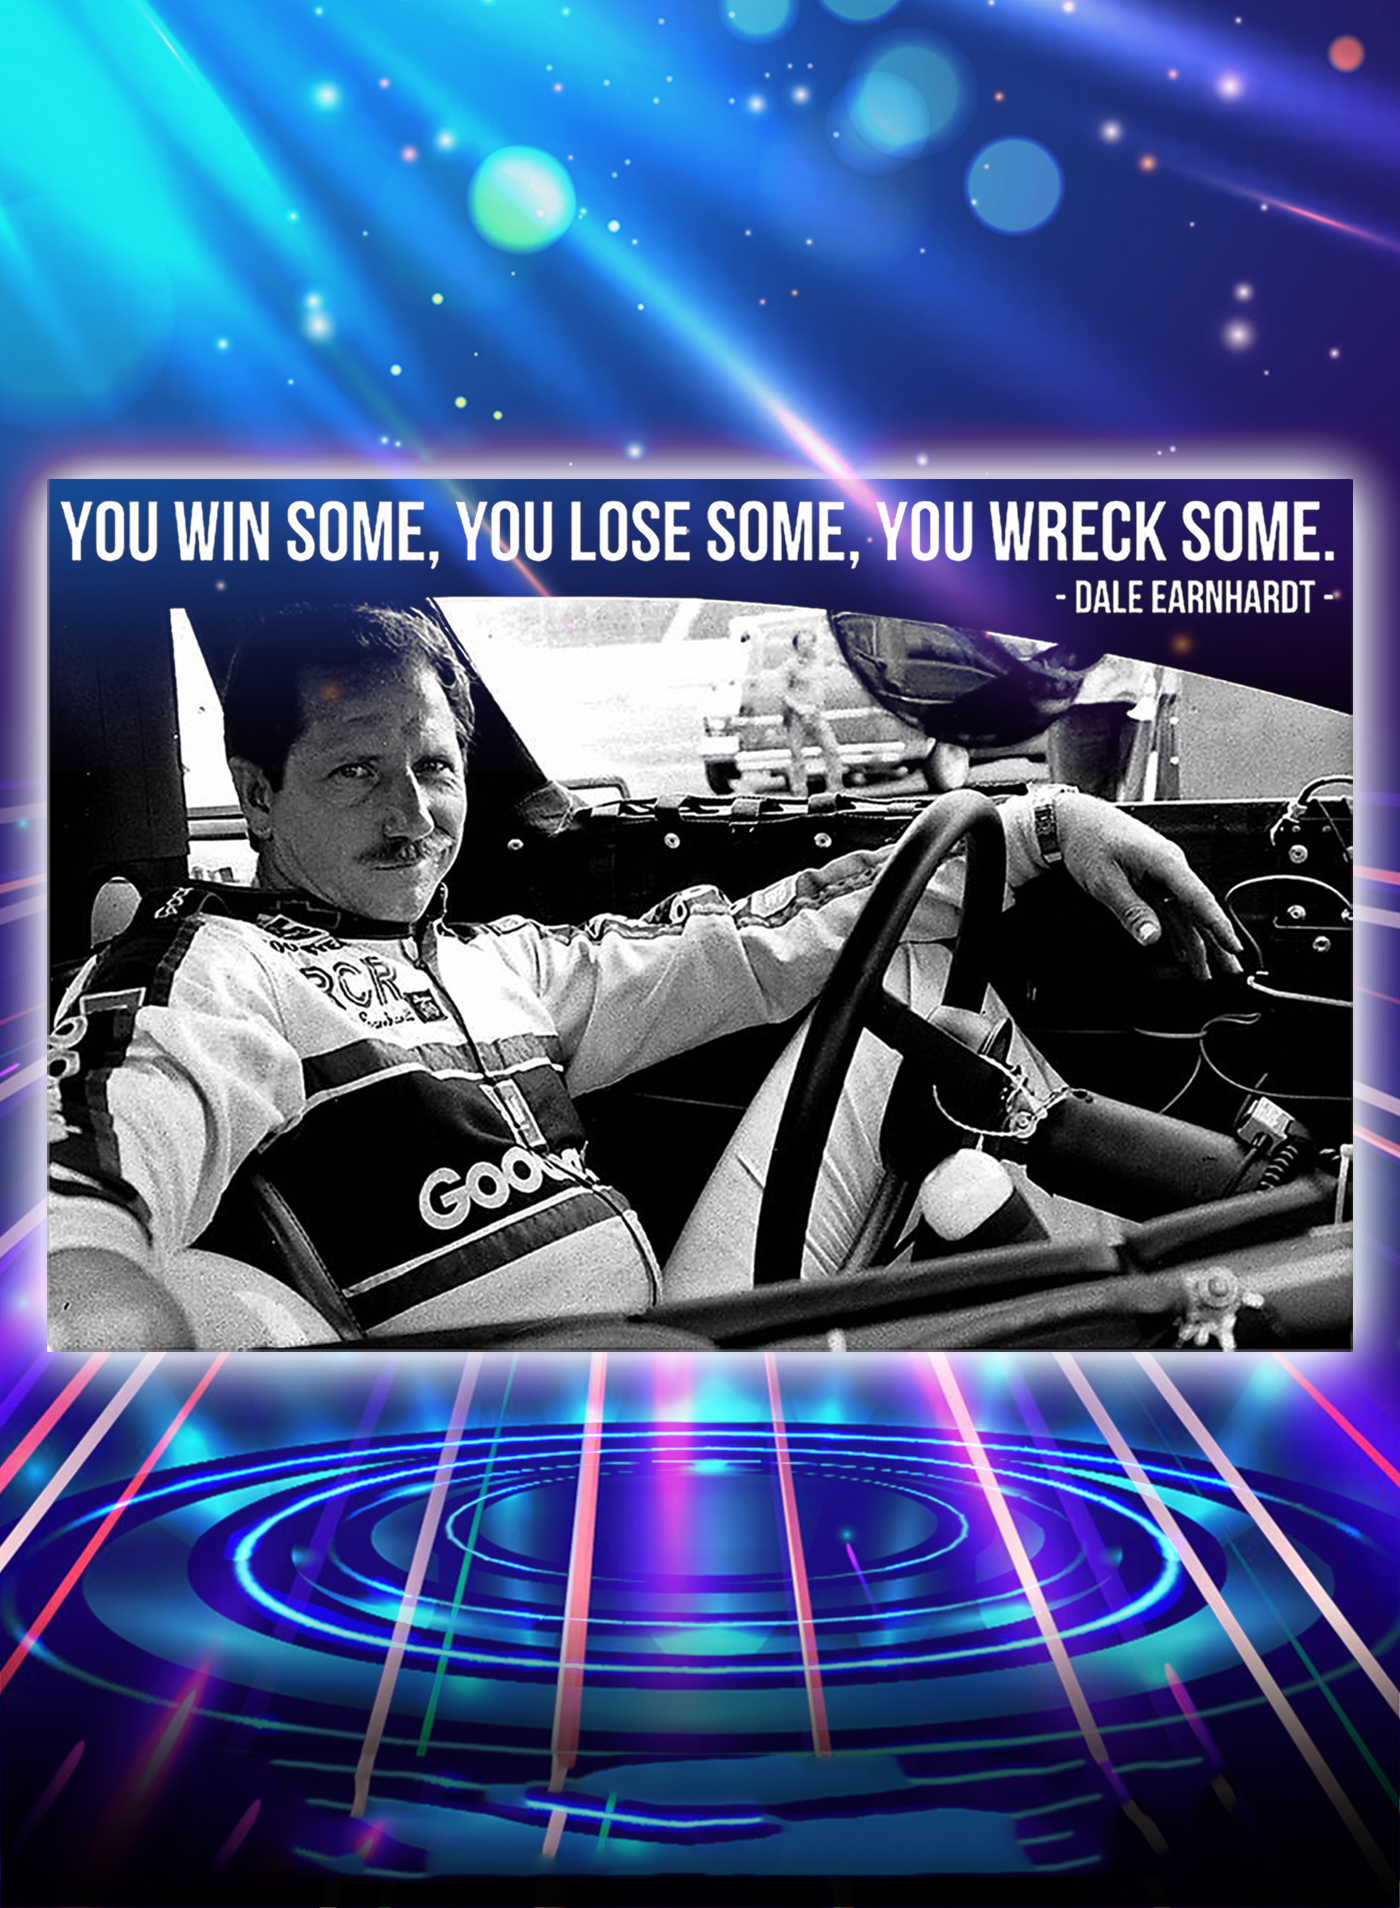 Dale earnhardt you win some you lose some you wreck some poster - A1